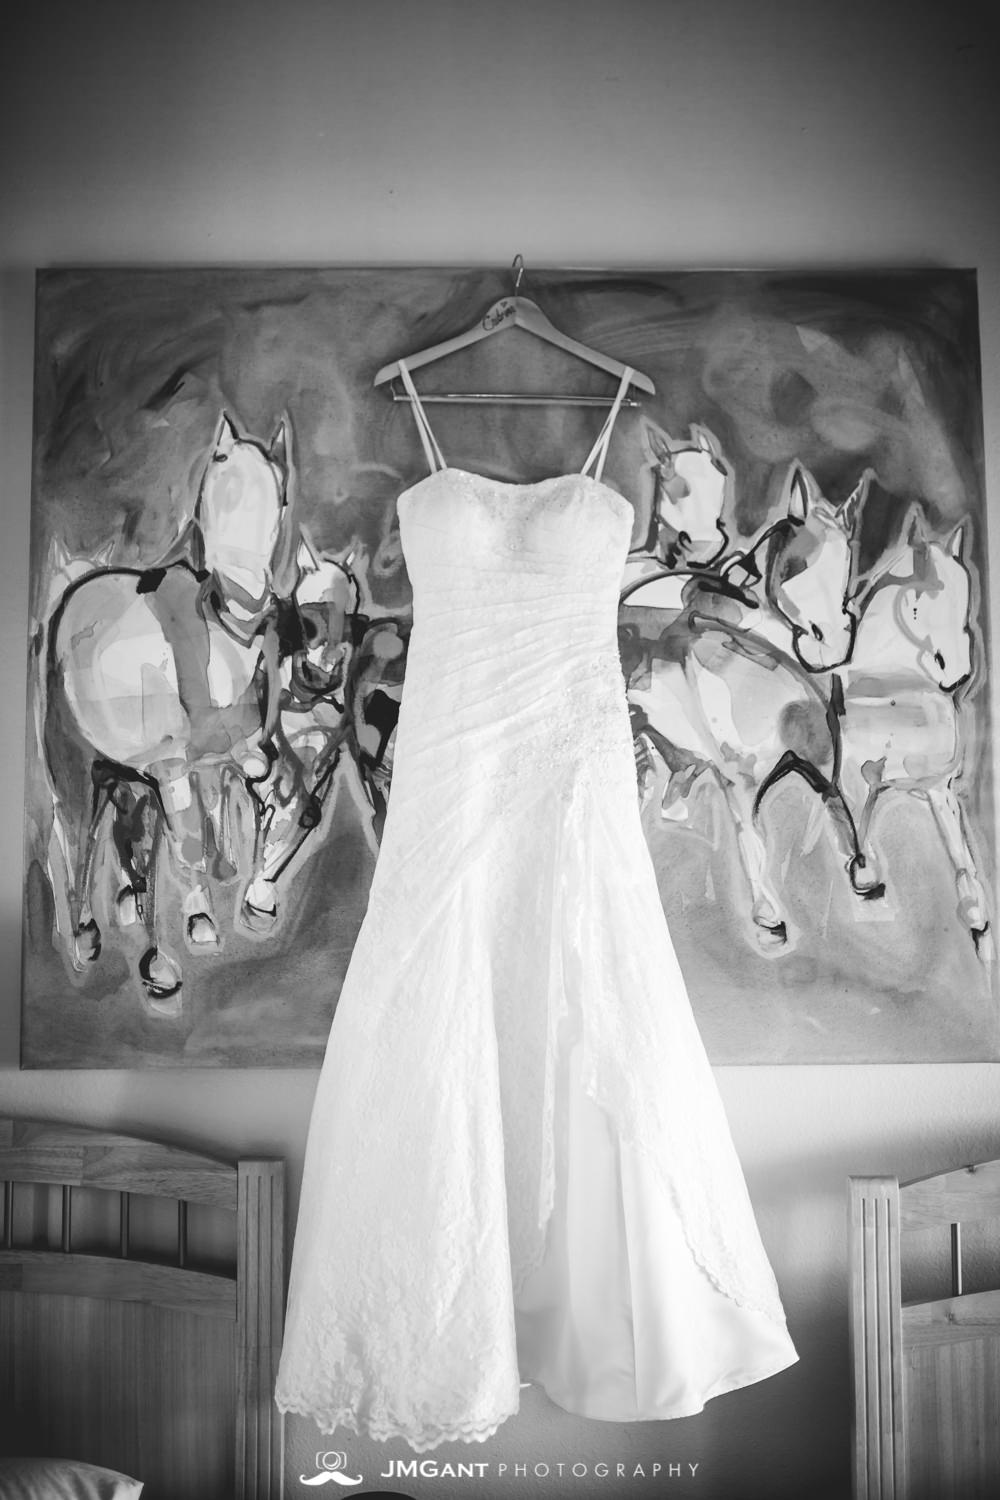 Vail Colorado Wedding | Dress, rings, and other details | Colorado wedding photographer | © JMGant Photography | http://www.jmgantphotography.com/